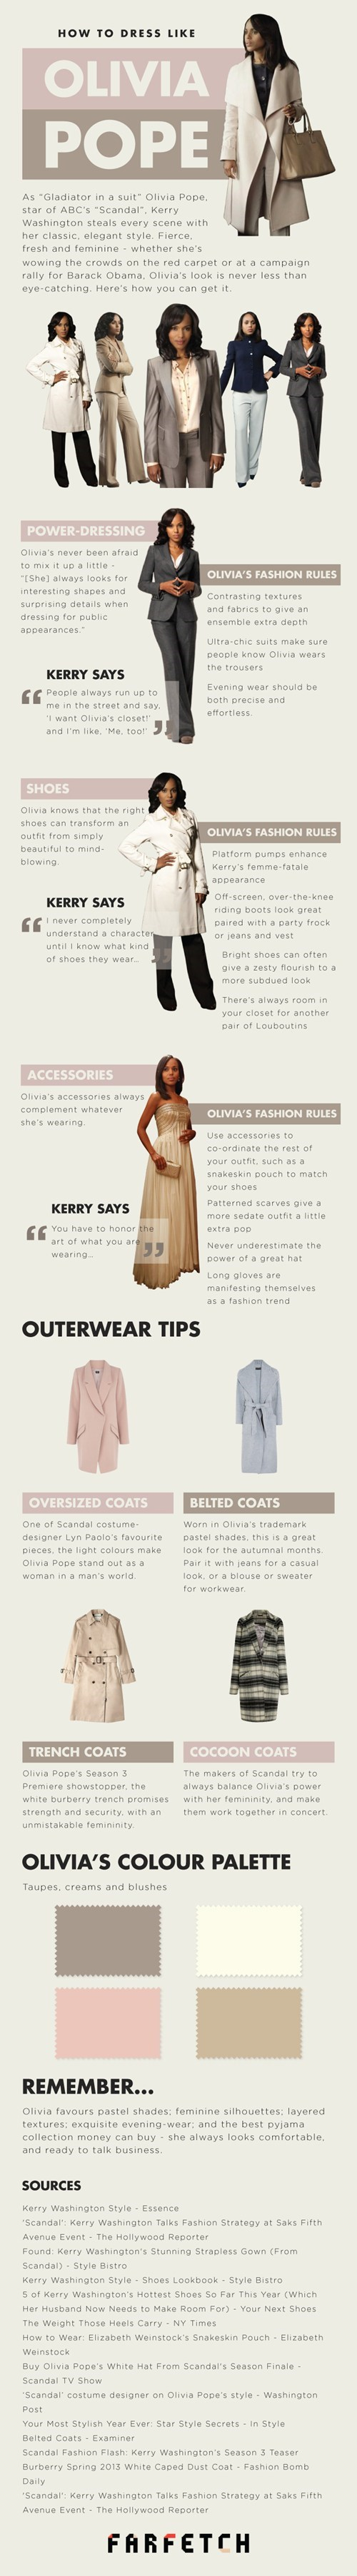 fashion infographic scandal television Olivia Pope